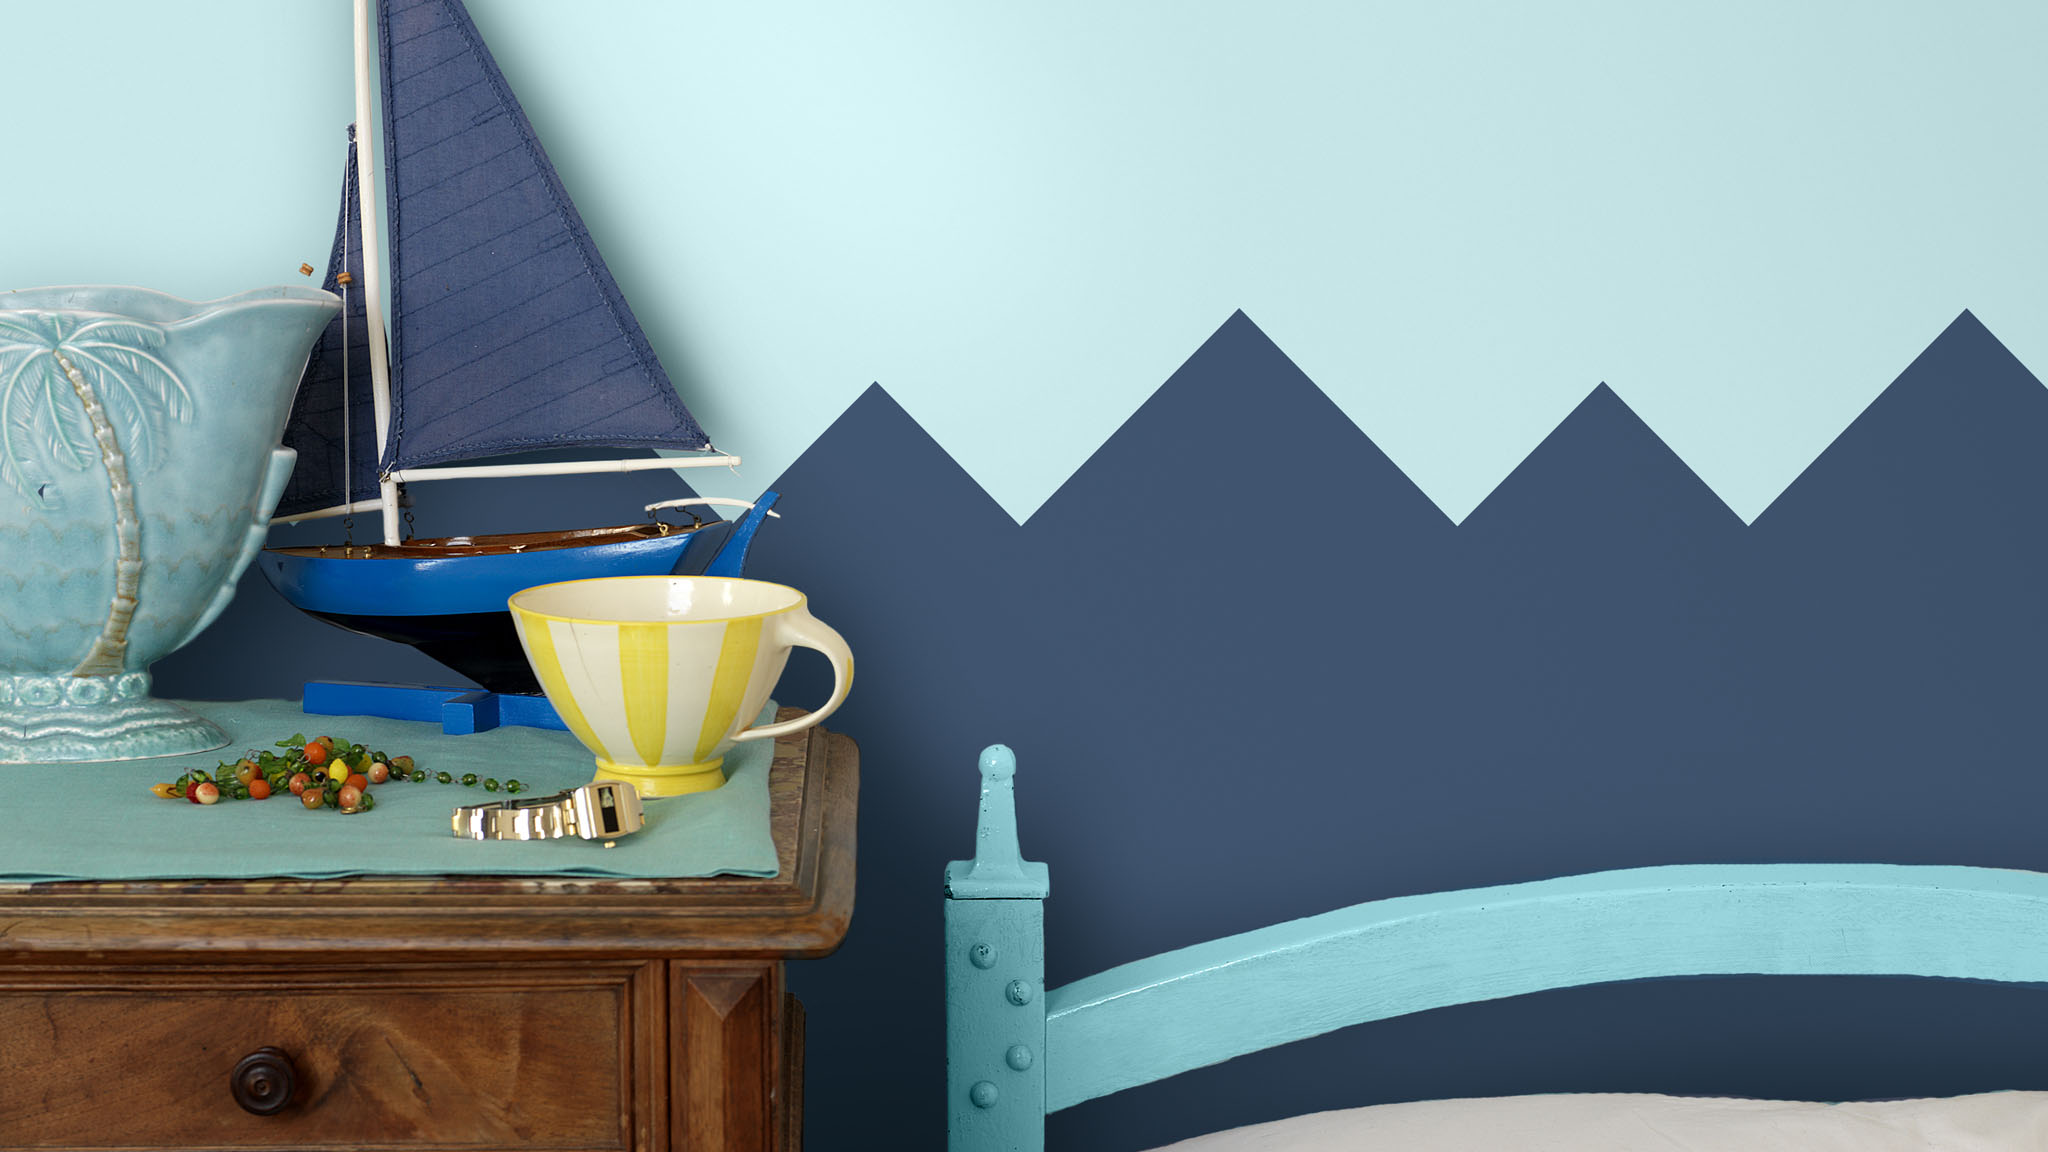 Create a sea-themed bedroom for your kid using geometric shapes